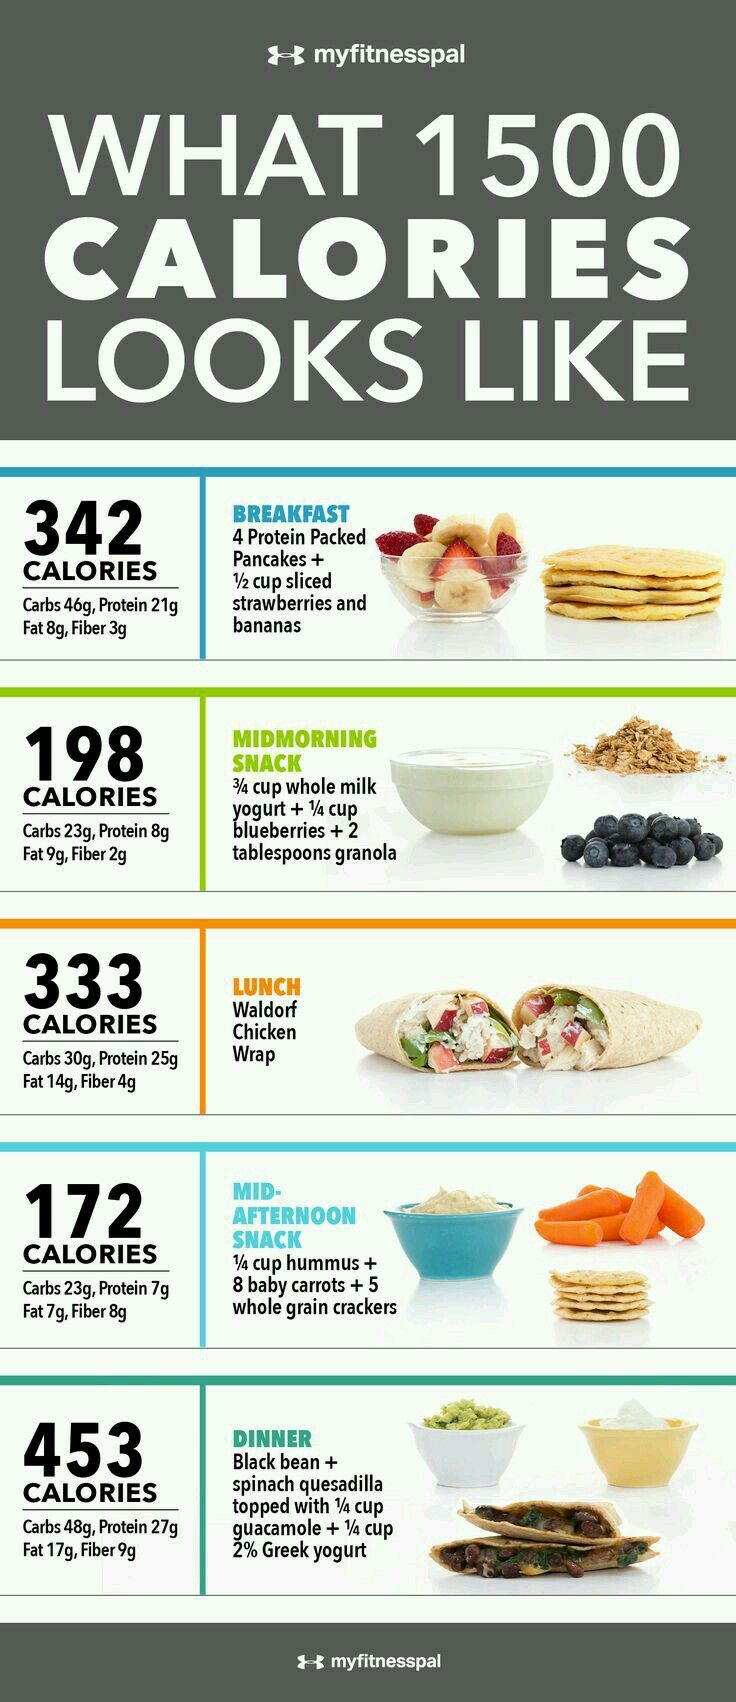 Top 10 natural weight loss products photo 2